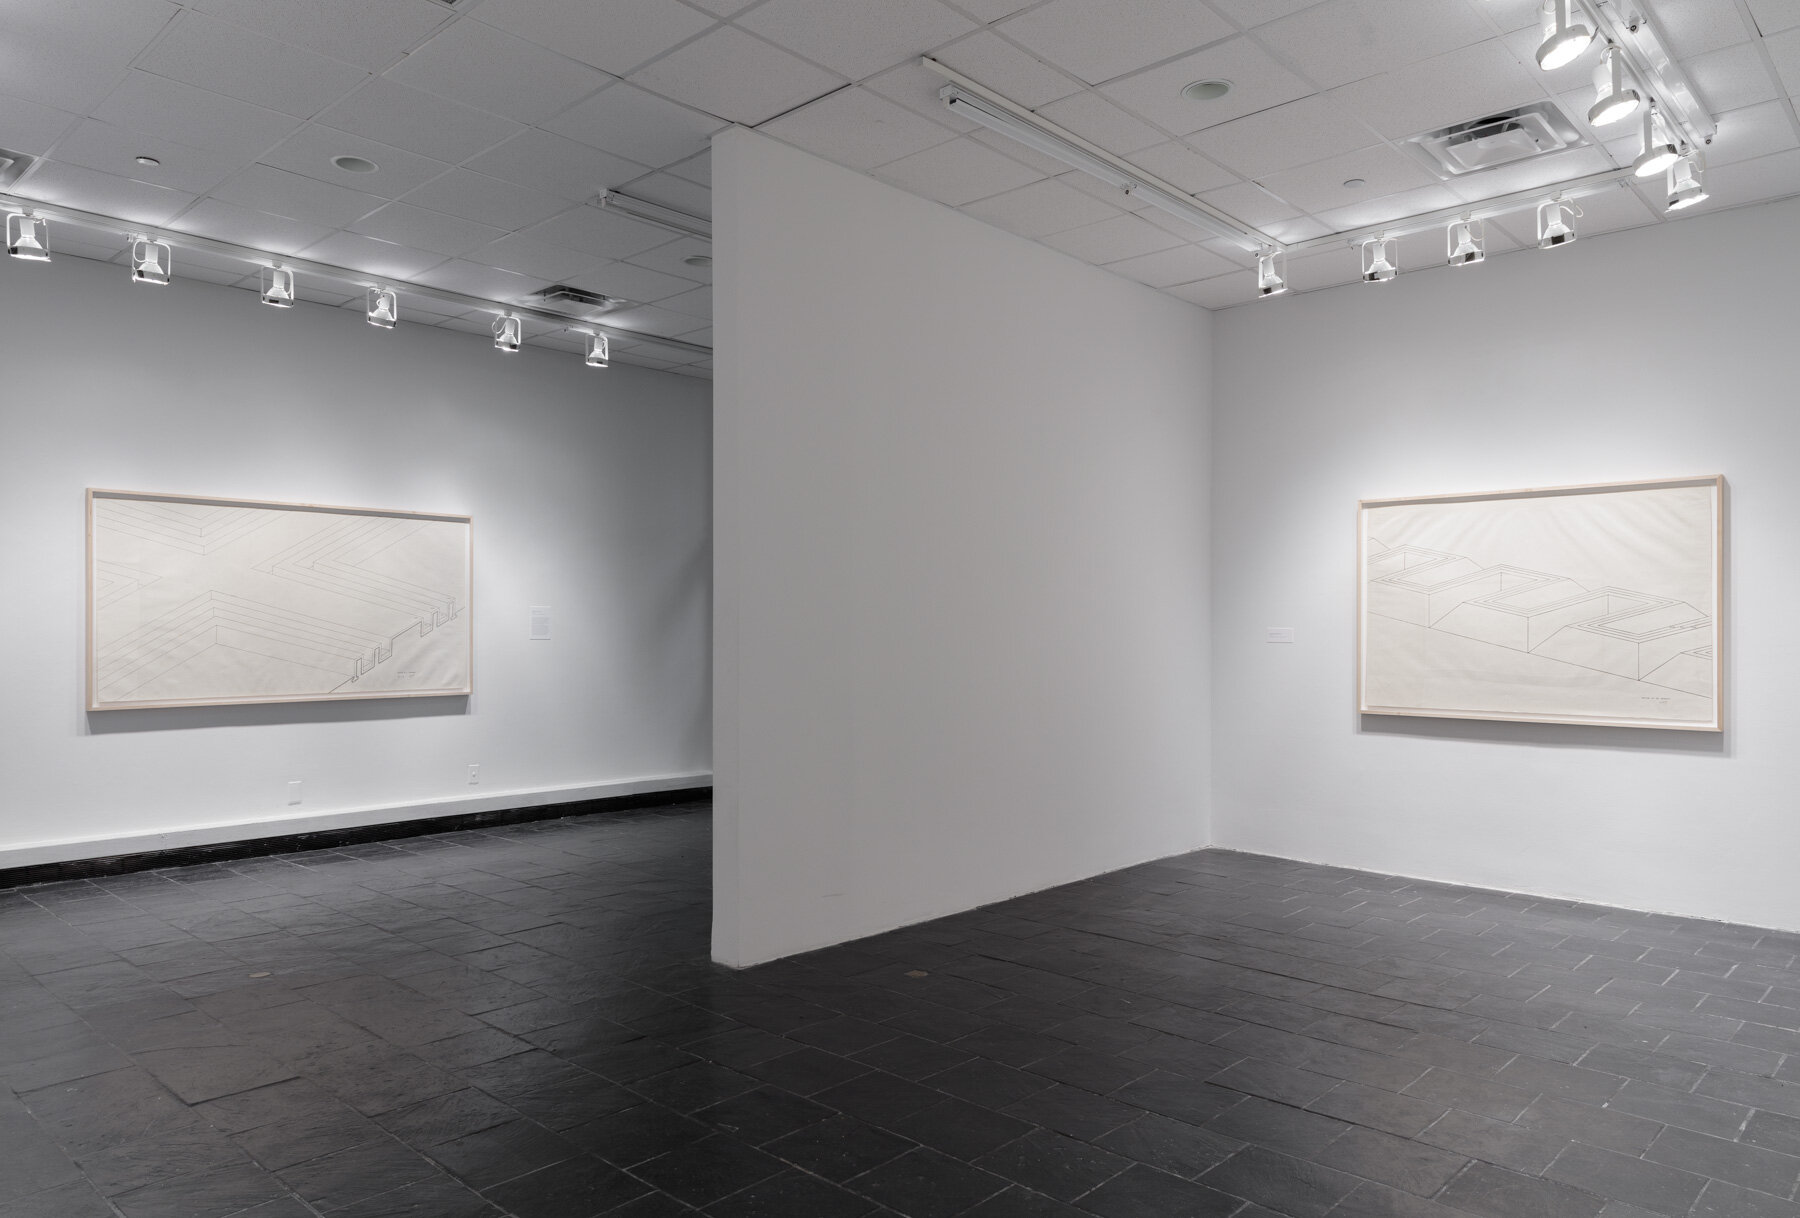 Installation view:  Robert Morris: Para-architectural projects , Hunter College Art Galleries, 2019. LEFT:  Section of a Concourse , 1971. Ink on paper, 42 x 83 in. (107 x 211 cm). Estate of Robert Morris, courtesy Castelli Gallery, New York.RIGHT: Section of an Aqueduct , 1971.Ink on paper, 42 x 64 in. (107 x 163 cm). Estate of Robert Morris, courtesy Castelli Gallery, New York. © 2019 The Estate of Robert Morris / Artists Rights Society (ARS), New York. Photo: Stan Narte